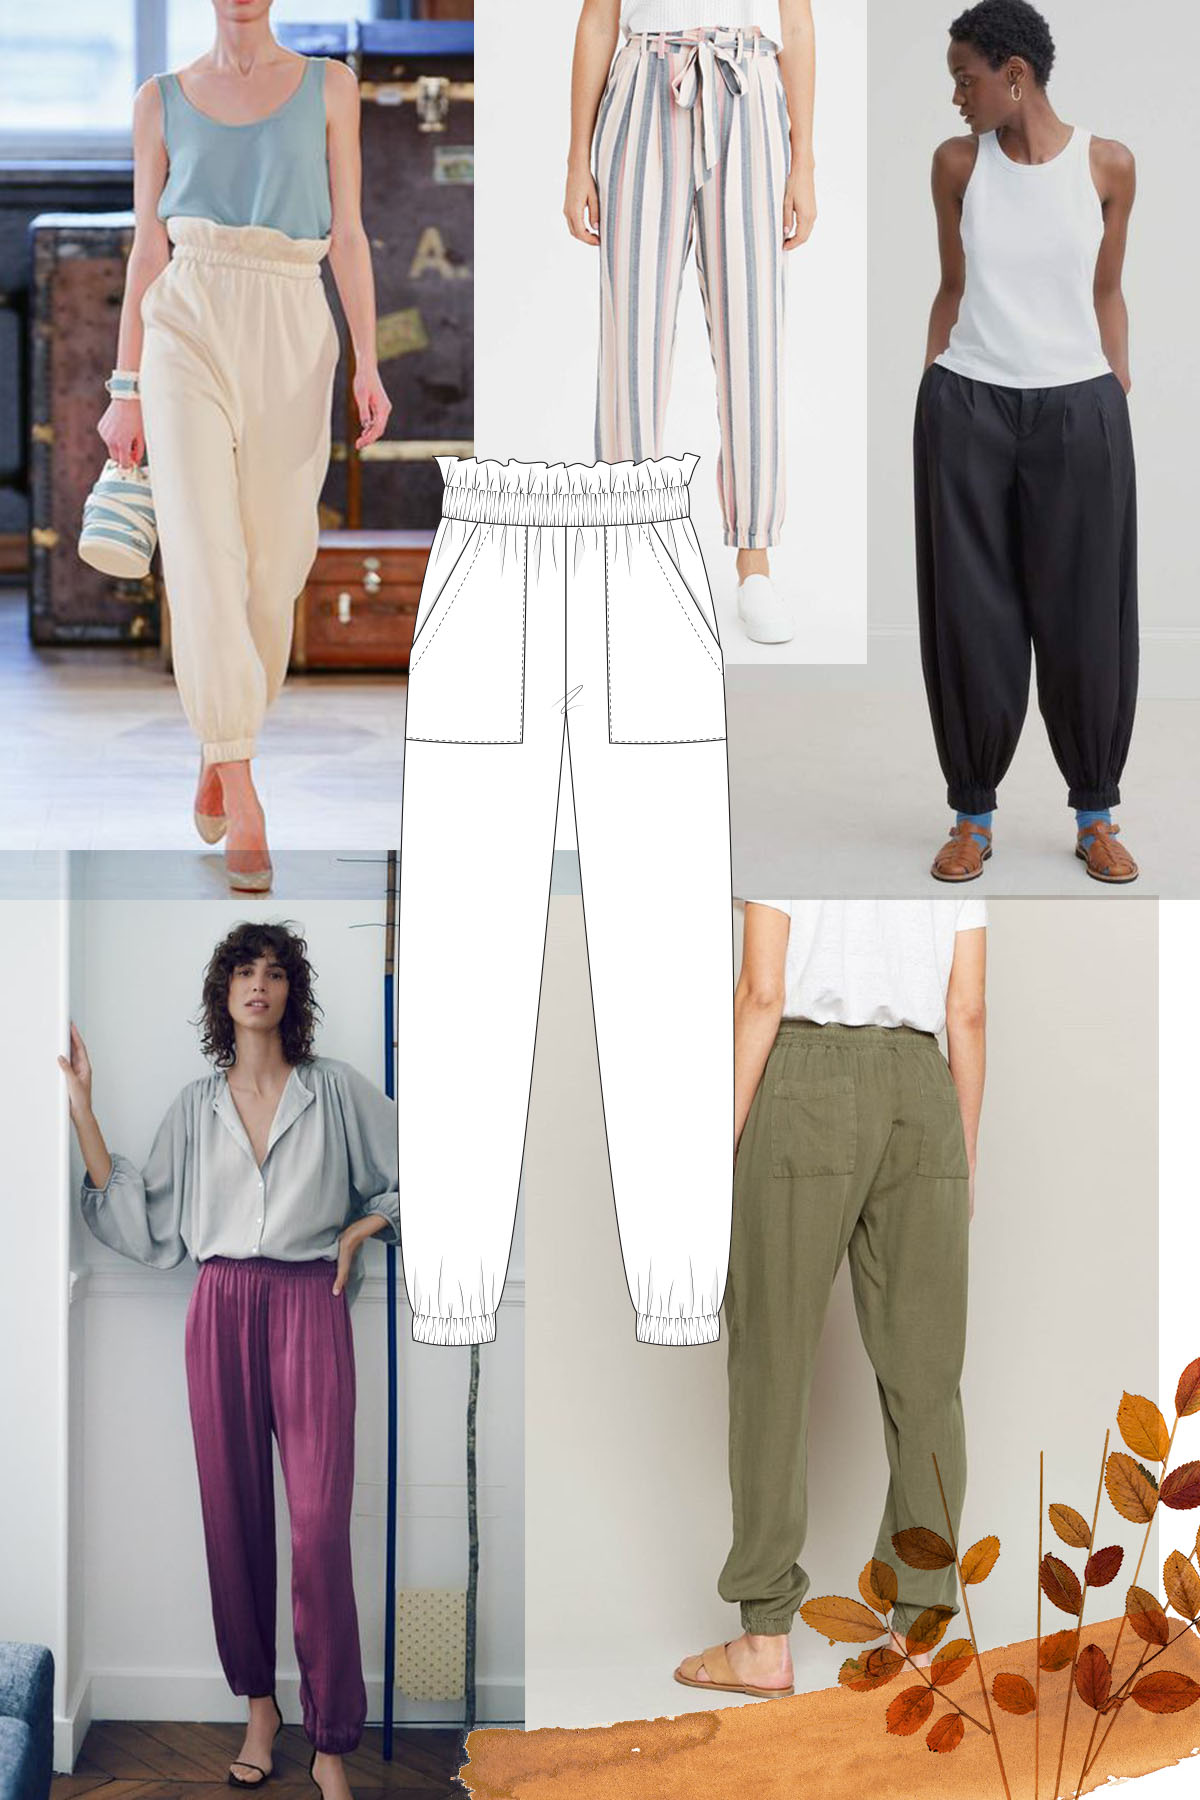 Adding elastic to the hem of your Opal pants to make them joggers